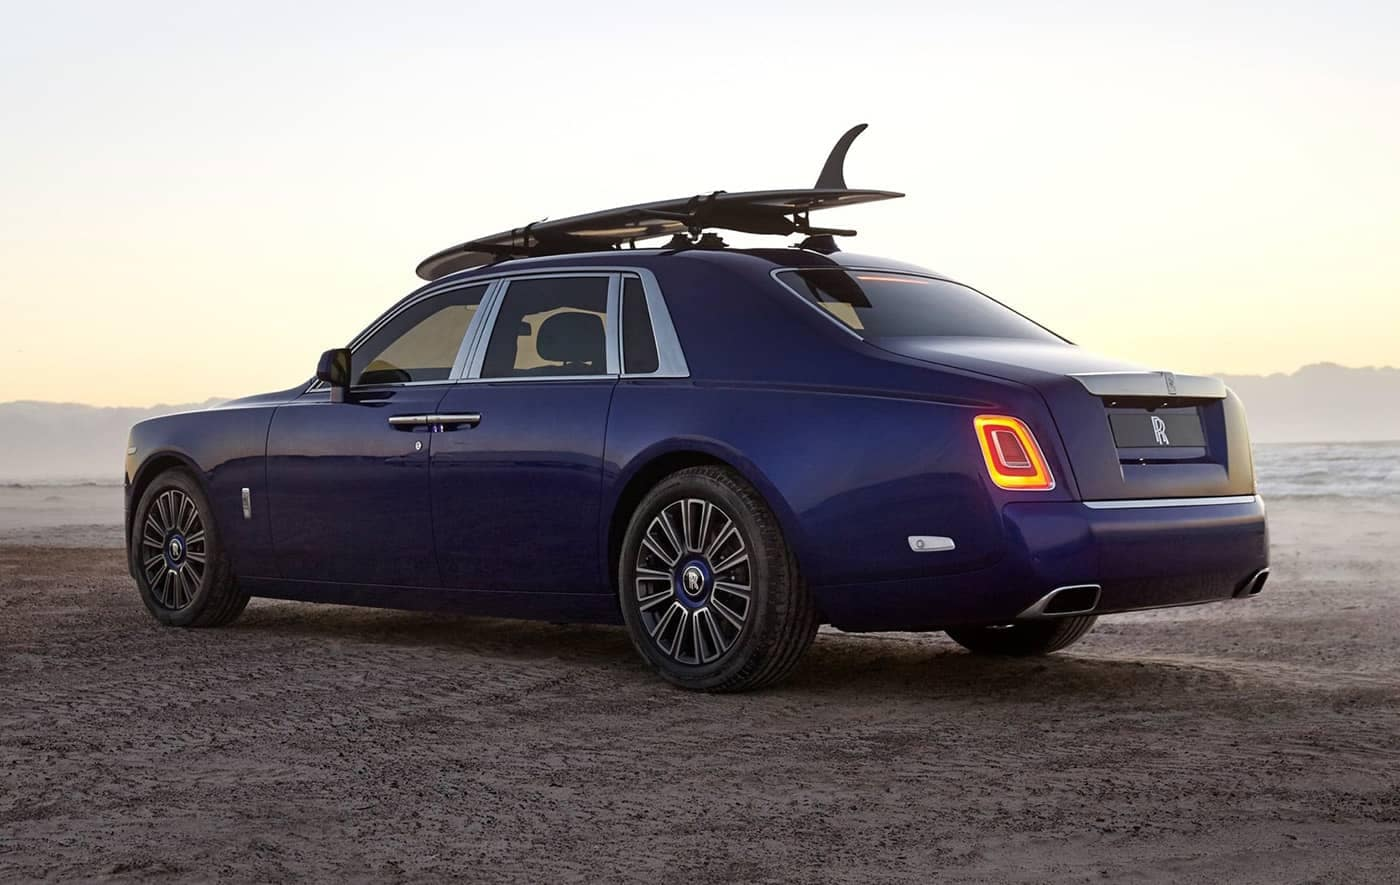 2020 Rolls Royce on The Beach